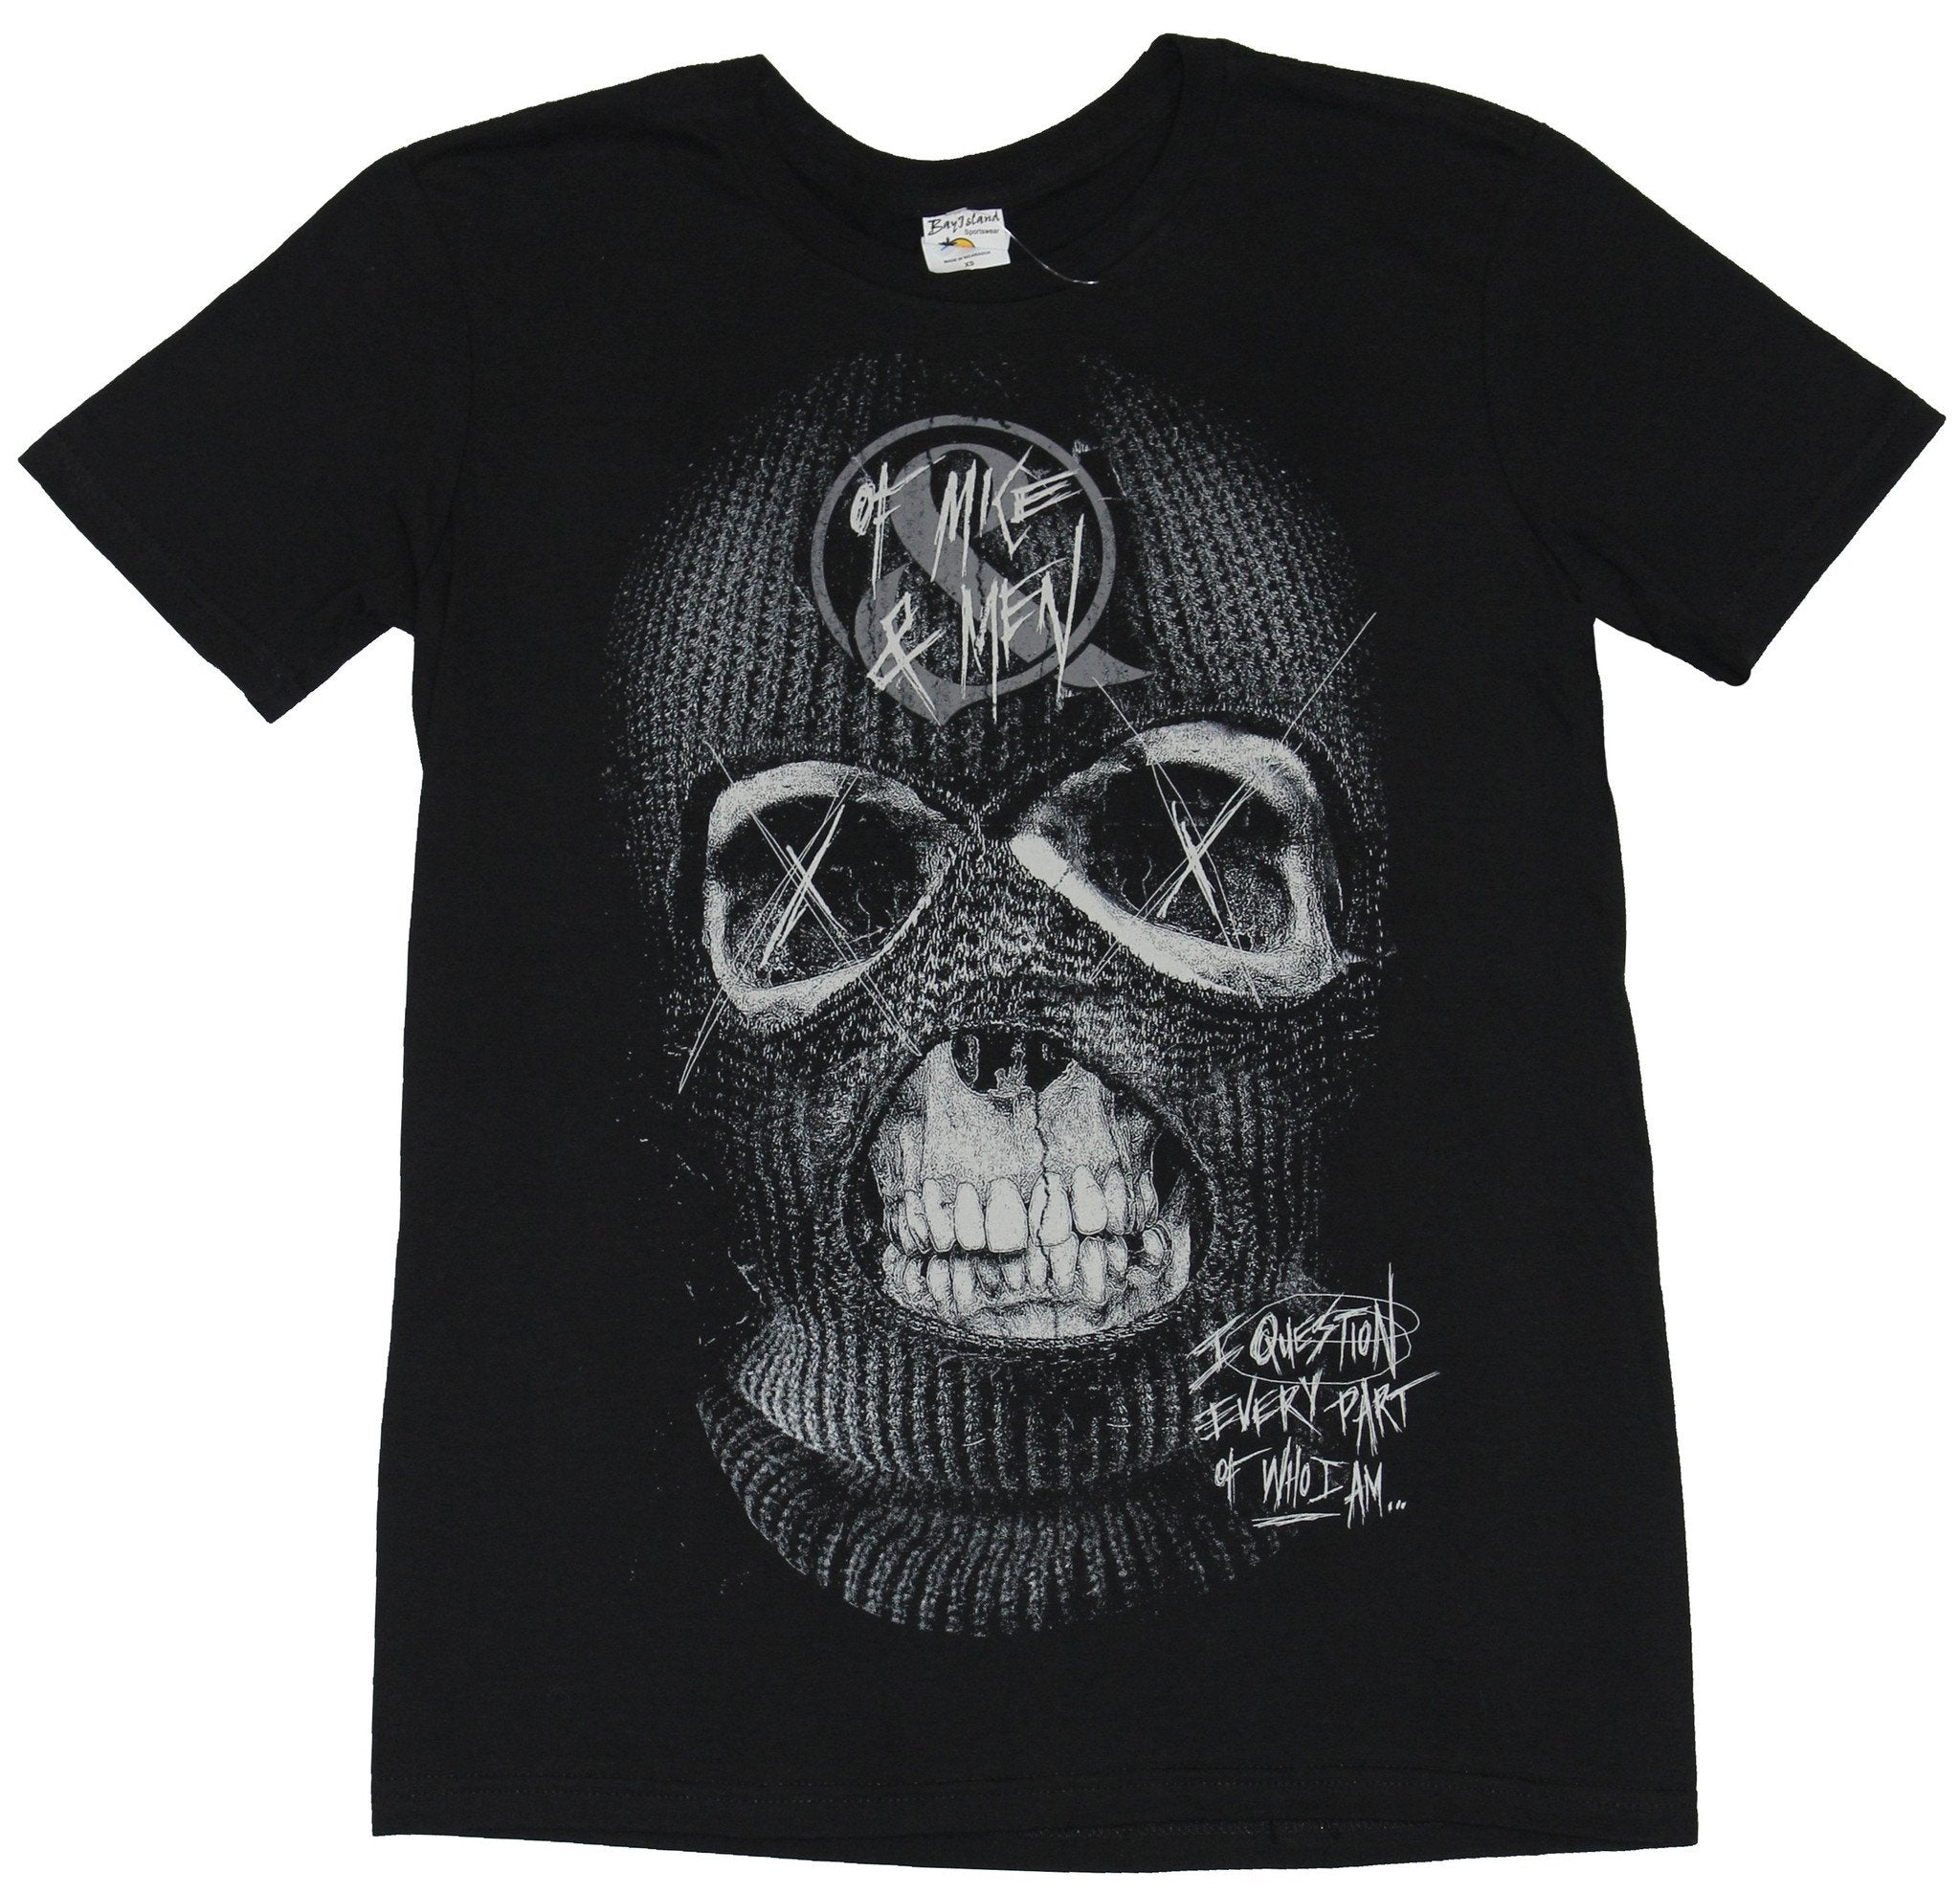 Of Mice And & Men Mens T-Shirt - Ski Mask Face I question Every Part Image